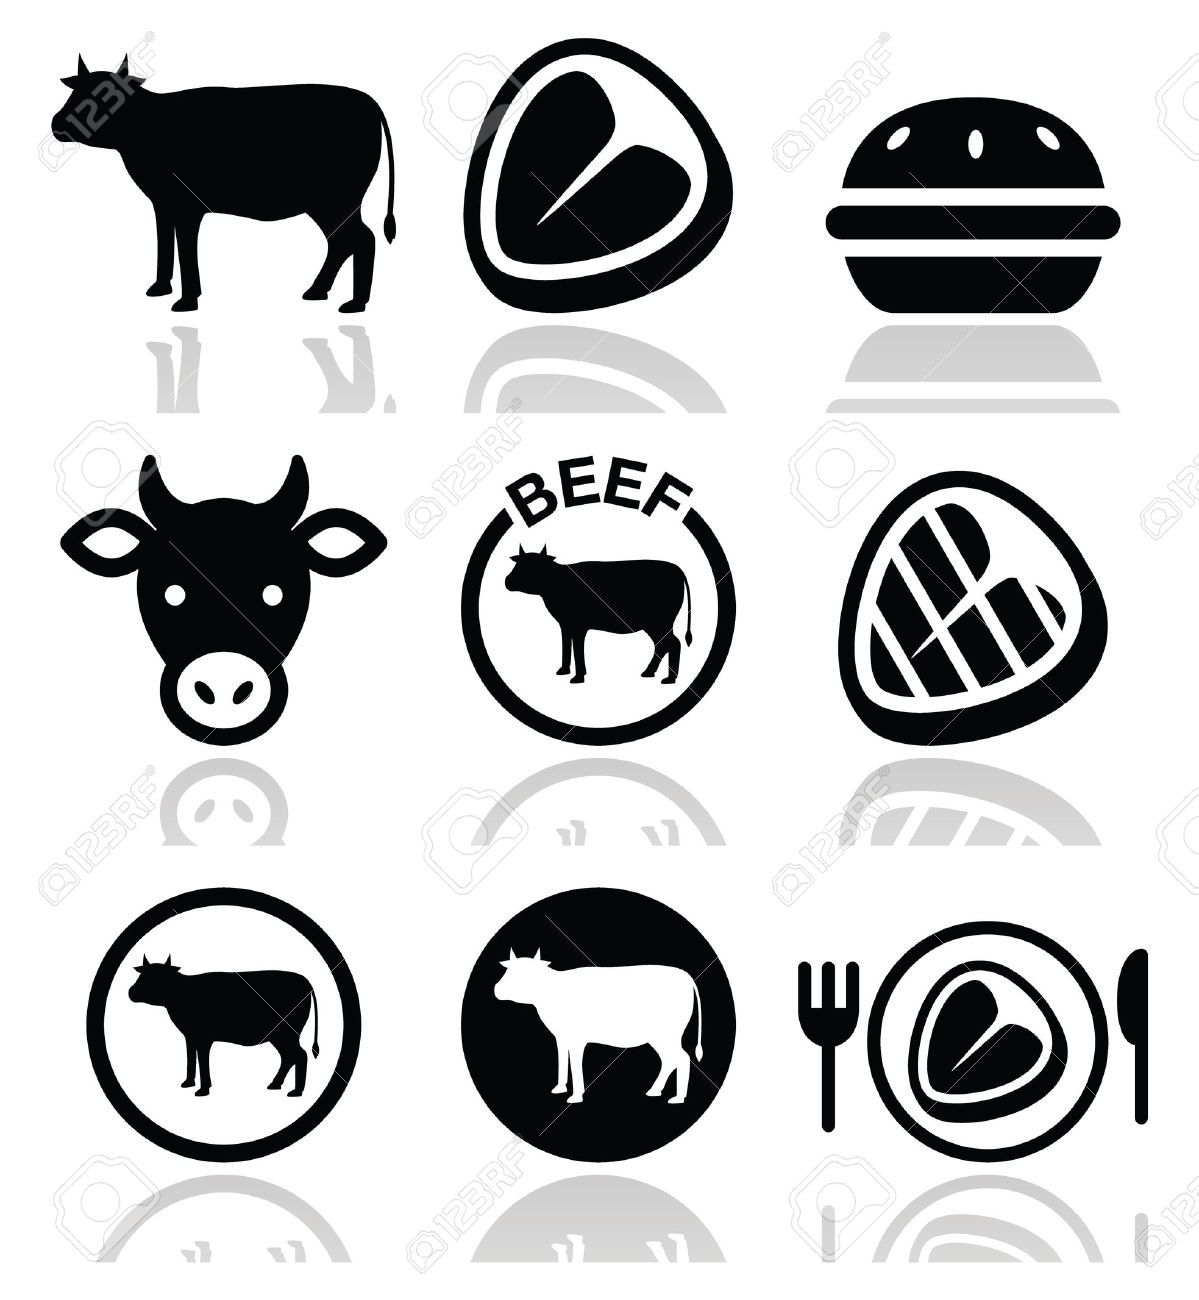 cow icon - Szukaj w Google | COW LOGO | Pinterest | Cow ...